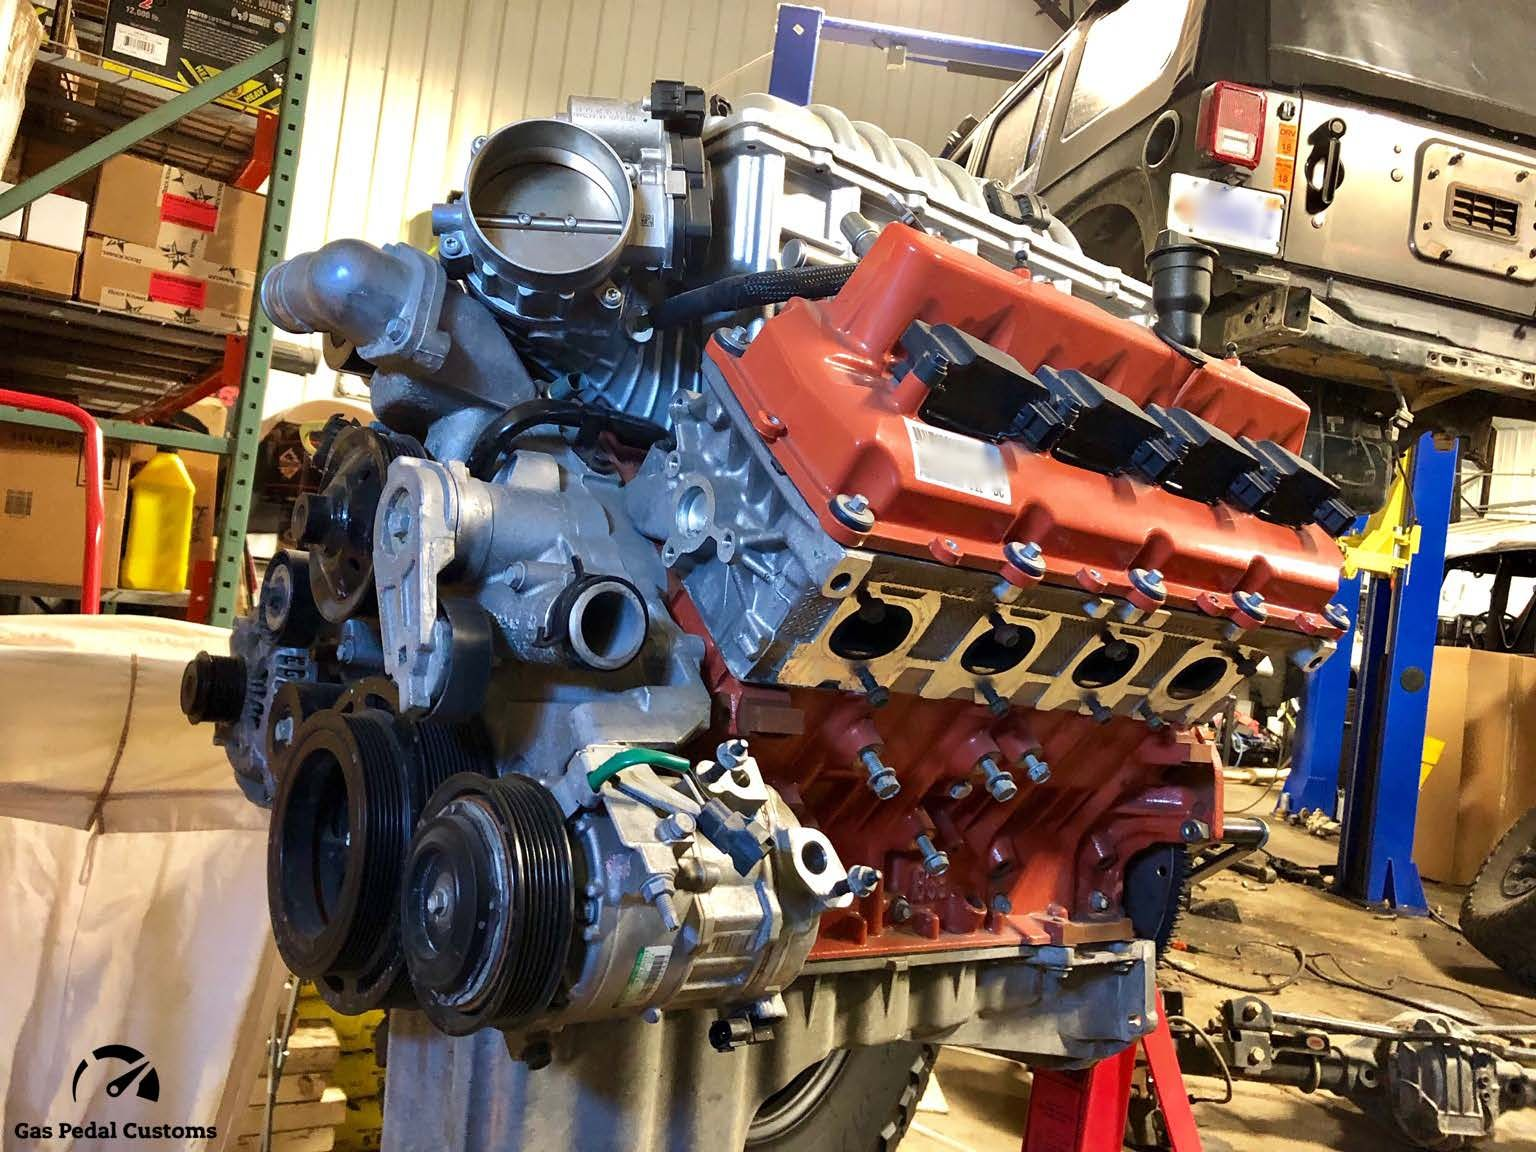 small resolution of hellcat engine for a custom jeep wrangler unlimited gas pedal customs hemi jeep conversions jeep suspension systems accessories wheels and more